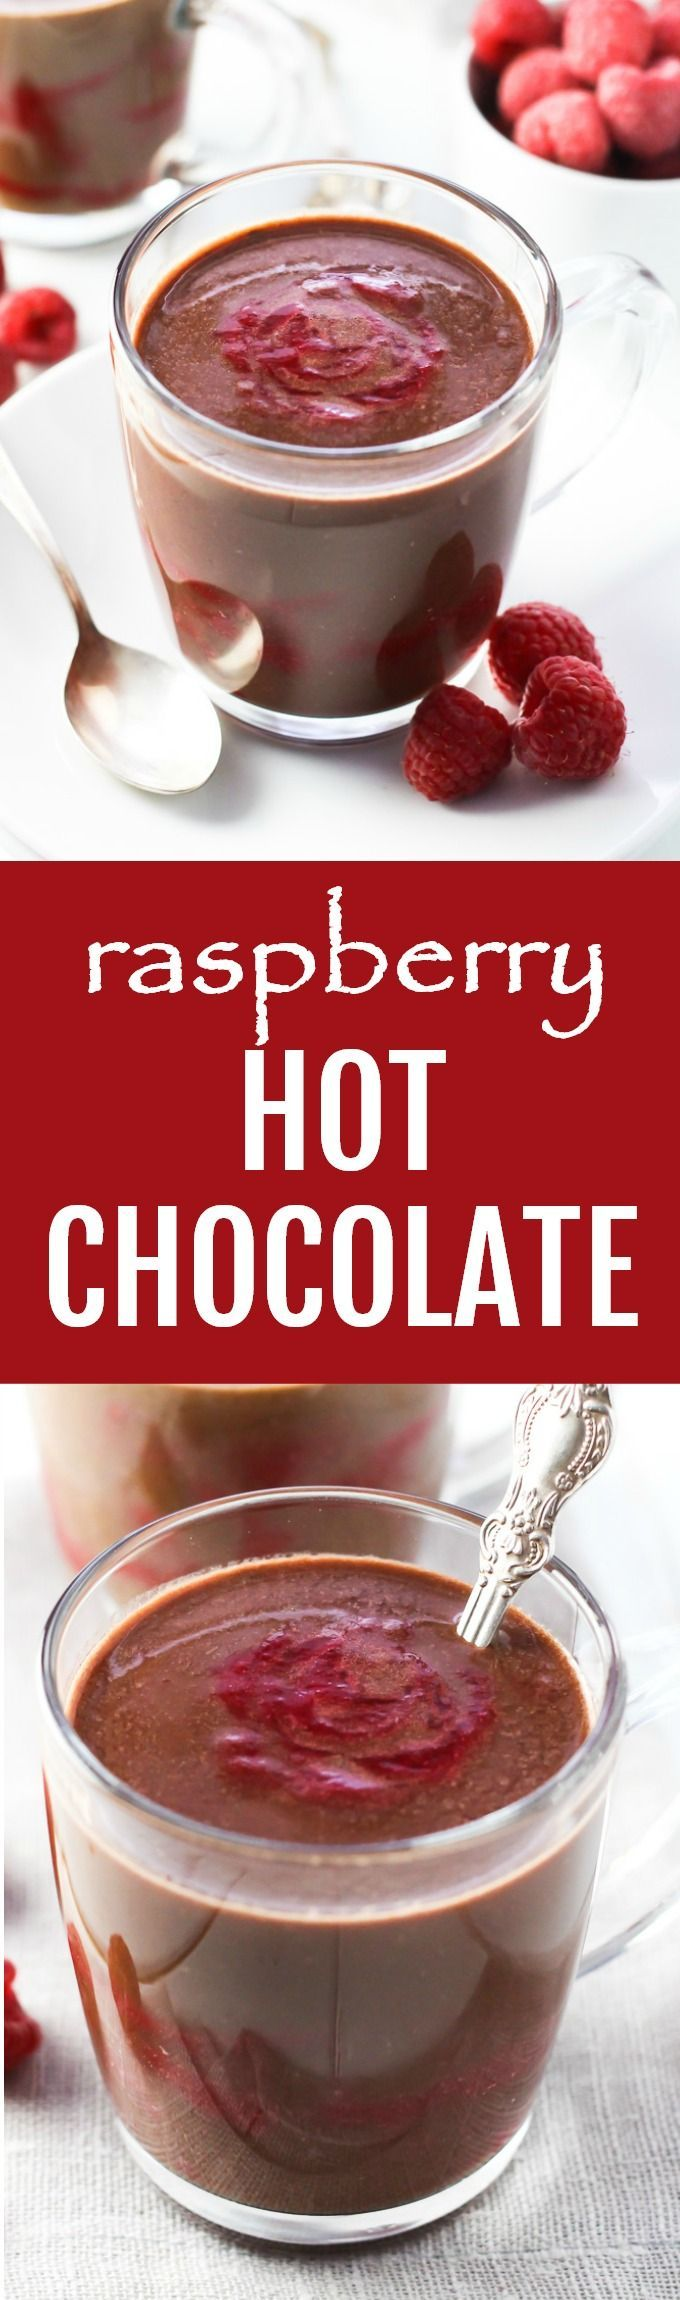 This raspberry hot chocolate is so rich, creamy, and comforting that you won't believe it's healthy. This easy recipe is made with cocoa powder, dark chocolate, raspberries, and maple syrup. And you can make this winter drink vegan by using non-dairy milk. The ingredient quantities are for one serving so you can just multiply them to make as much as you need. Refined sugar free.